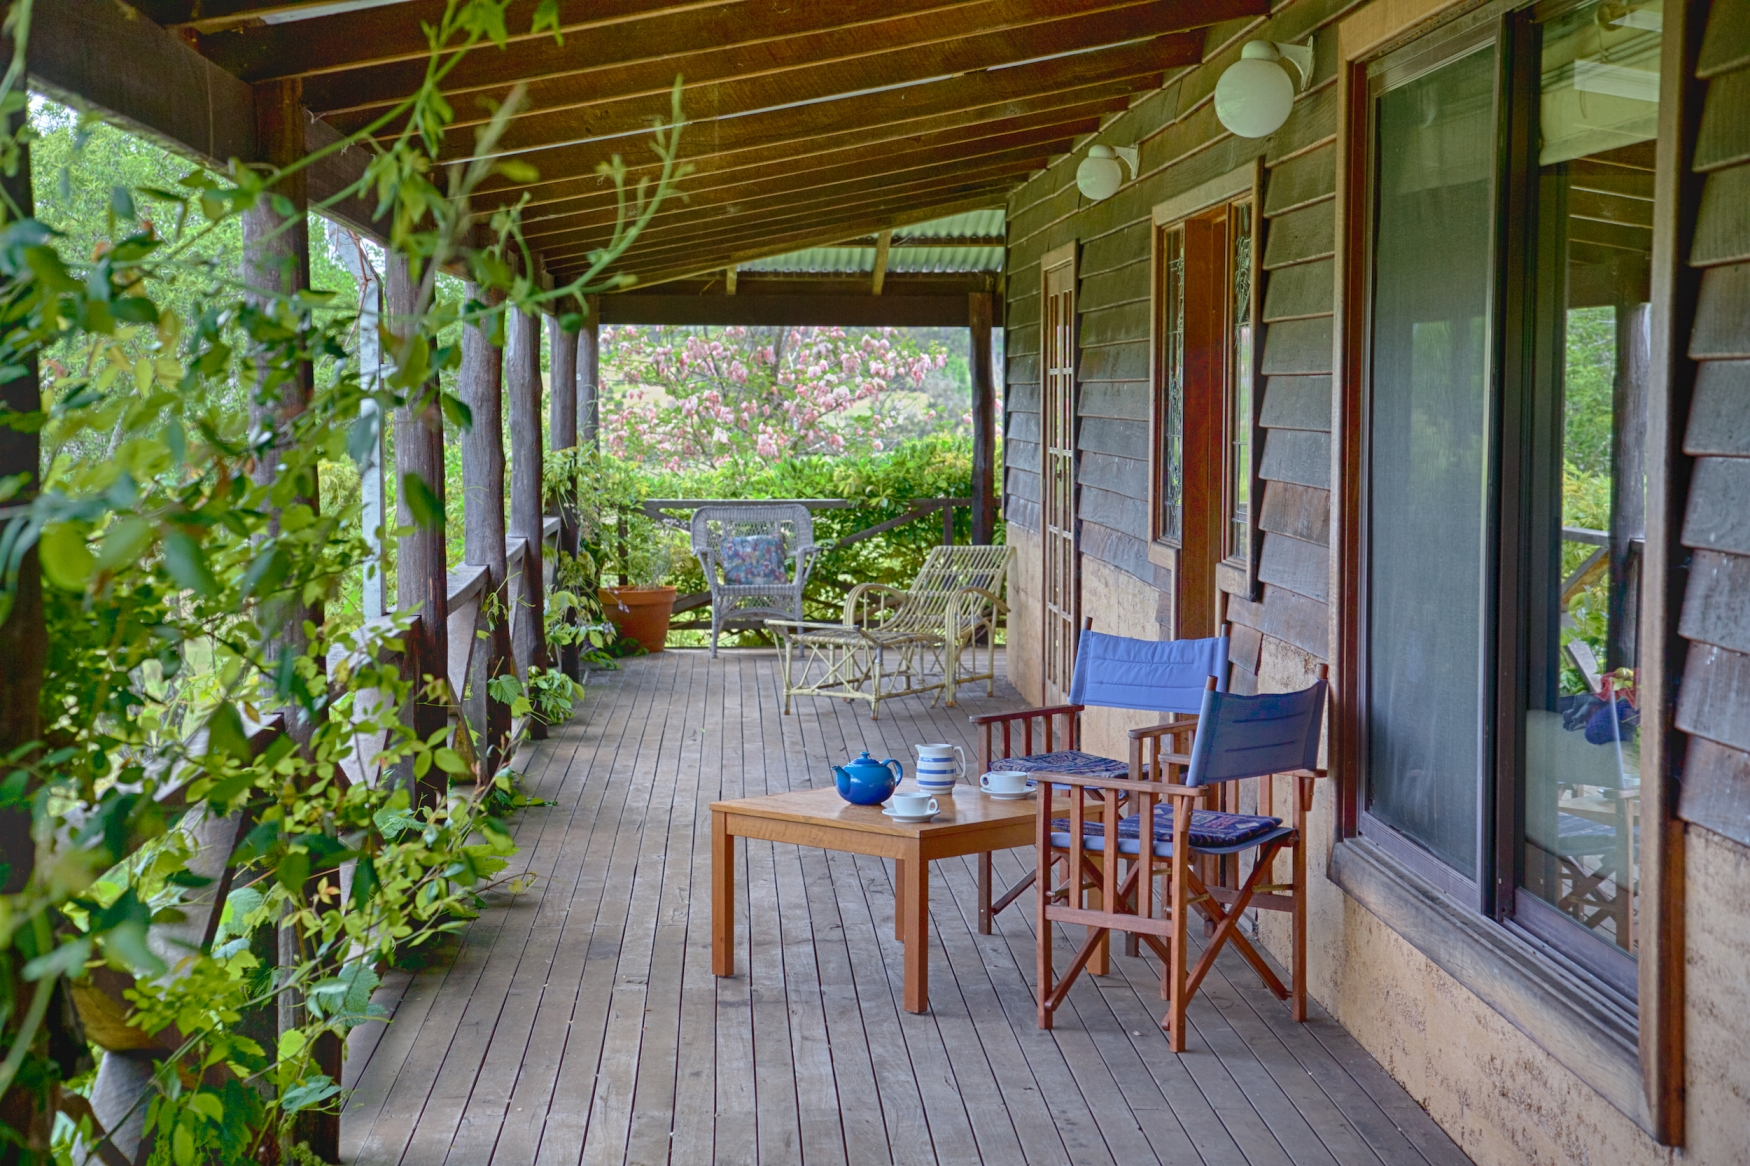 21541 South Western Highway Balingup - House For Sale - 22768520 - Acton Southwest